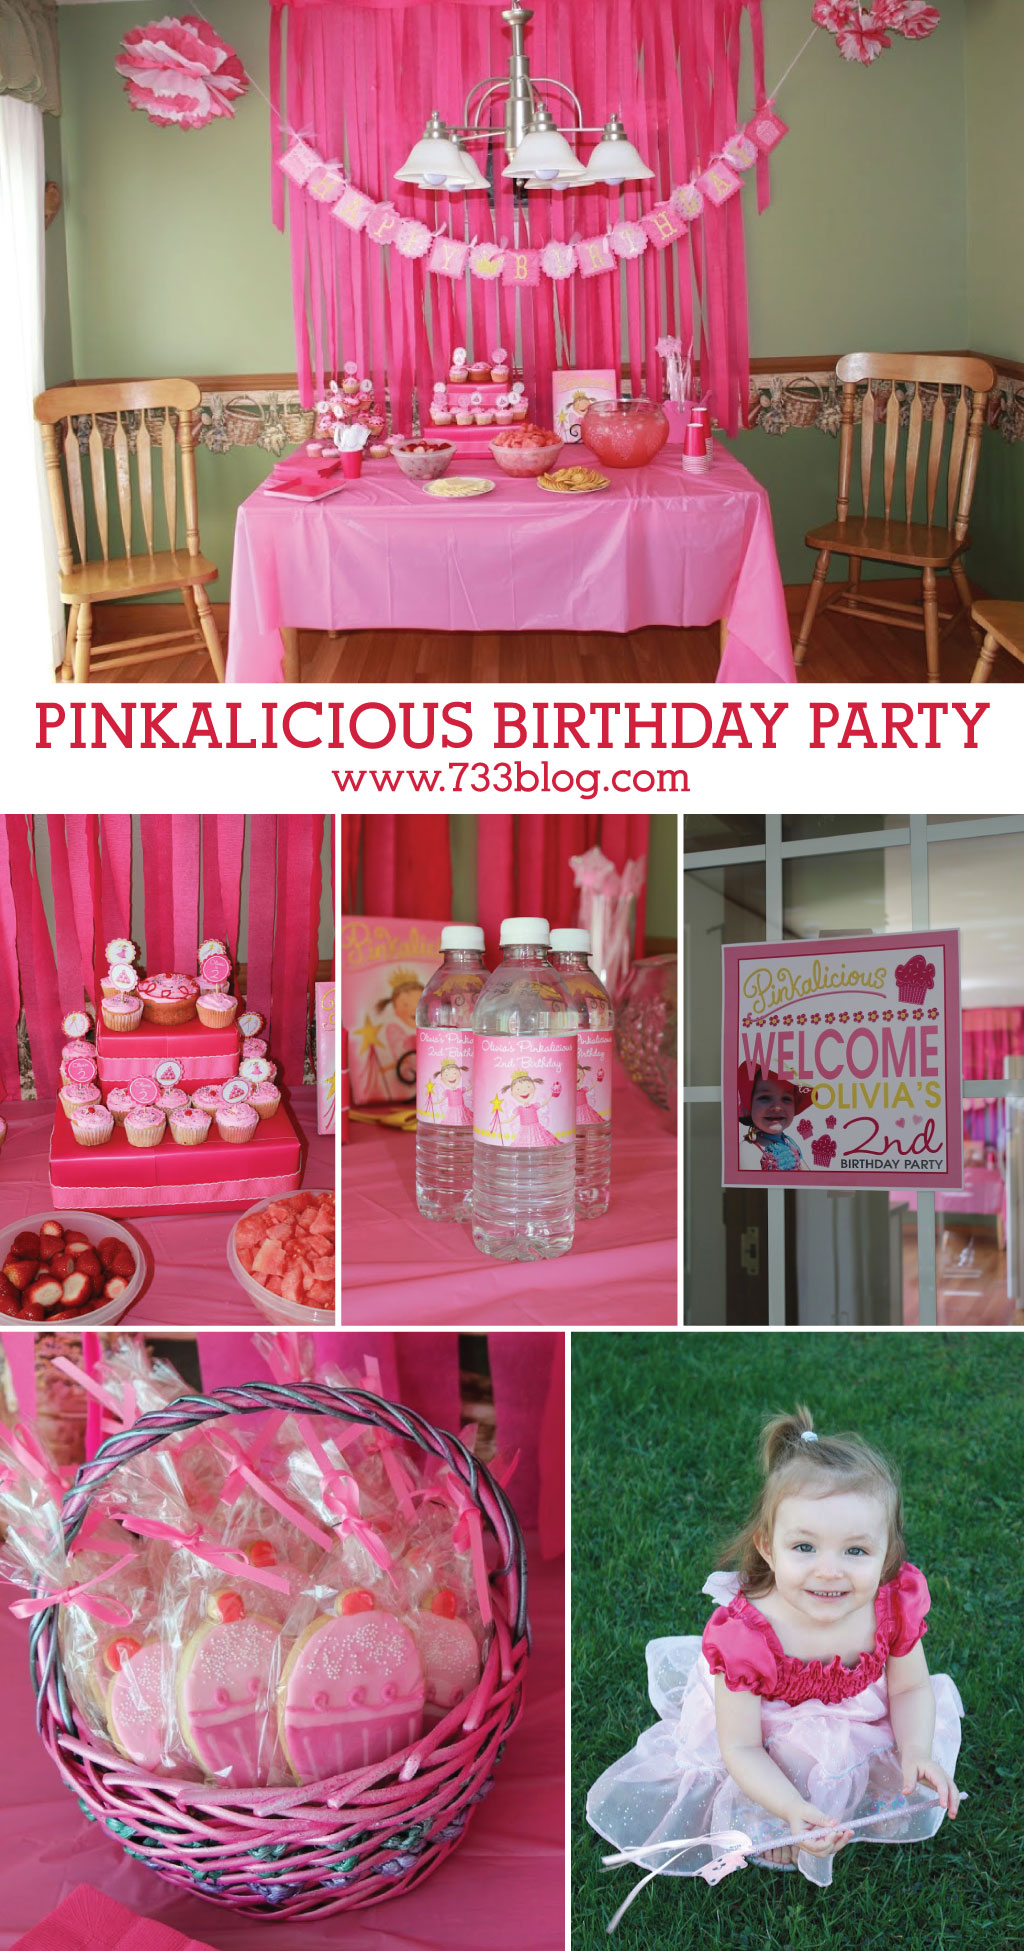 DIY Pinkalicious Birthday Party